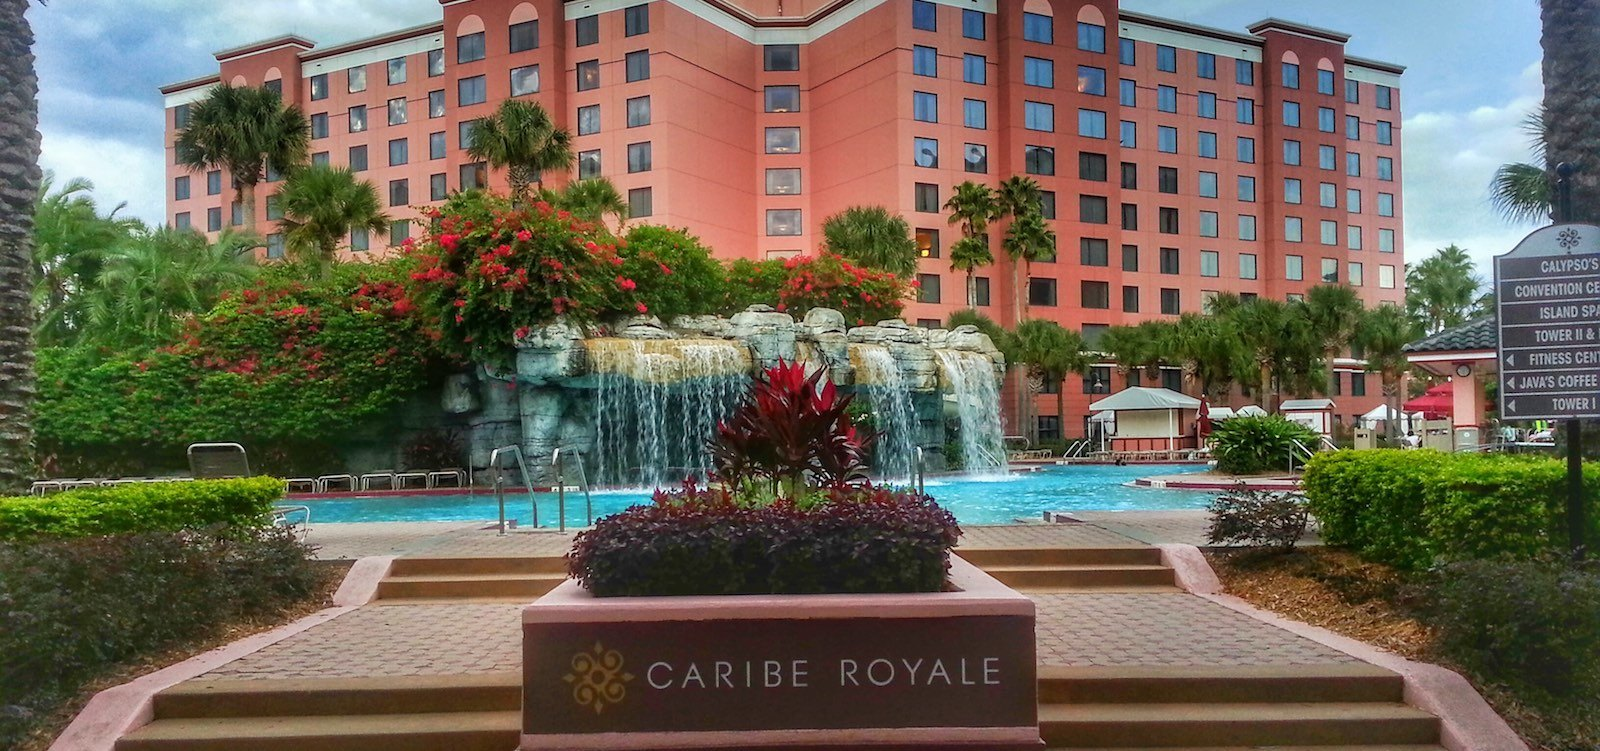 Family Travel Caribe Royale Orlando Hotel Review